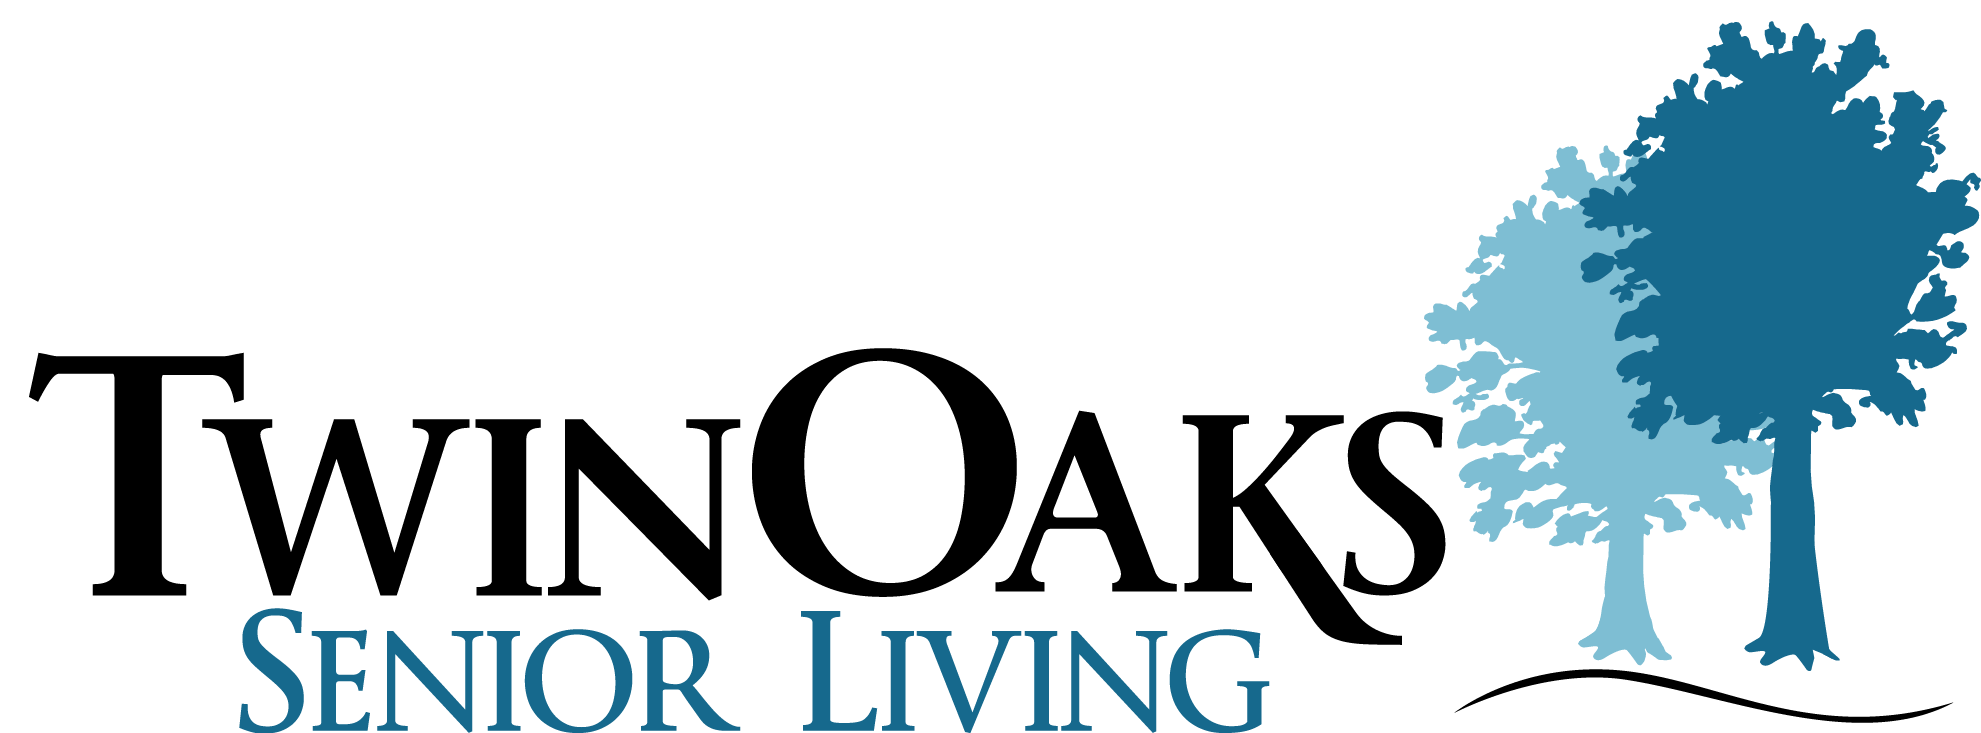 Twin-Oaks-Senior-Living-Color-1